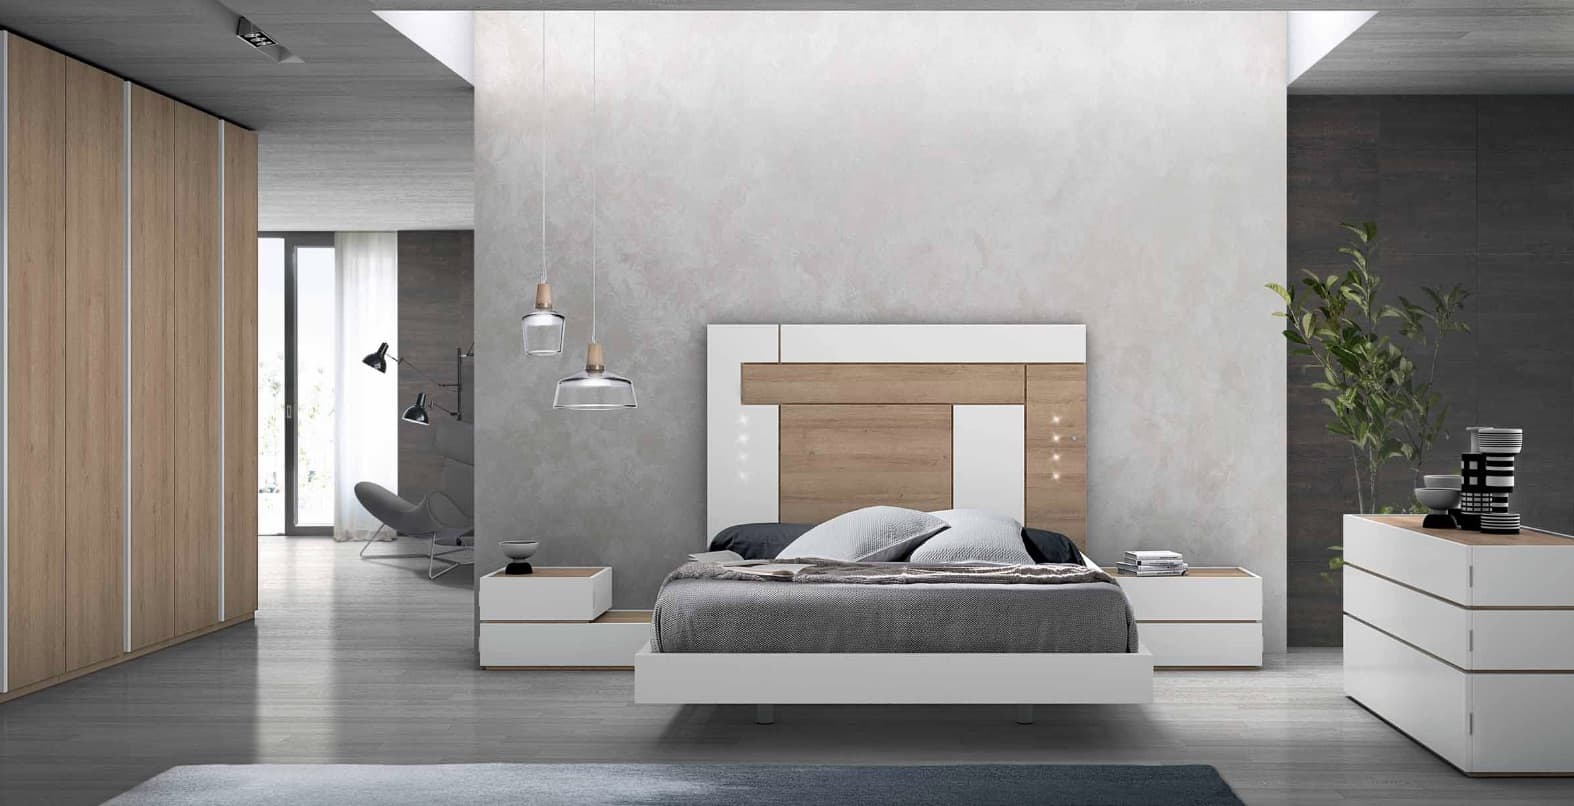 lit rectangle ambiance bois chambre adulte zen lit adulte design avec chevets personnalisable. Black Bedroom Furniture Sets. Home Design Ideas